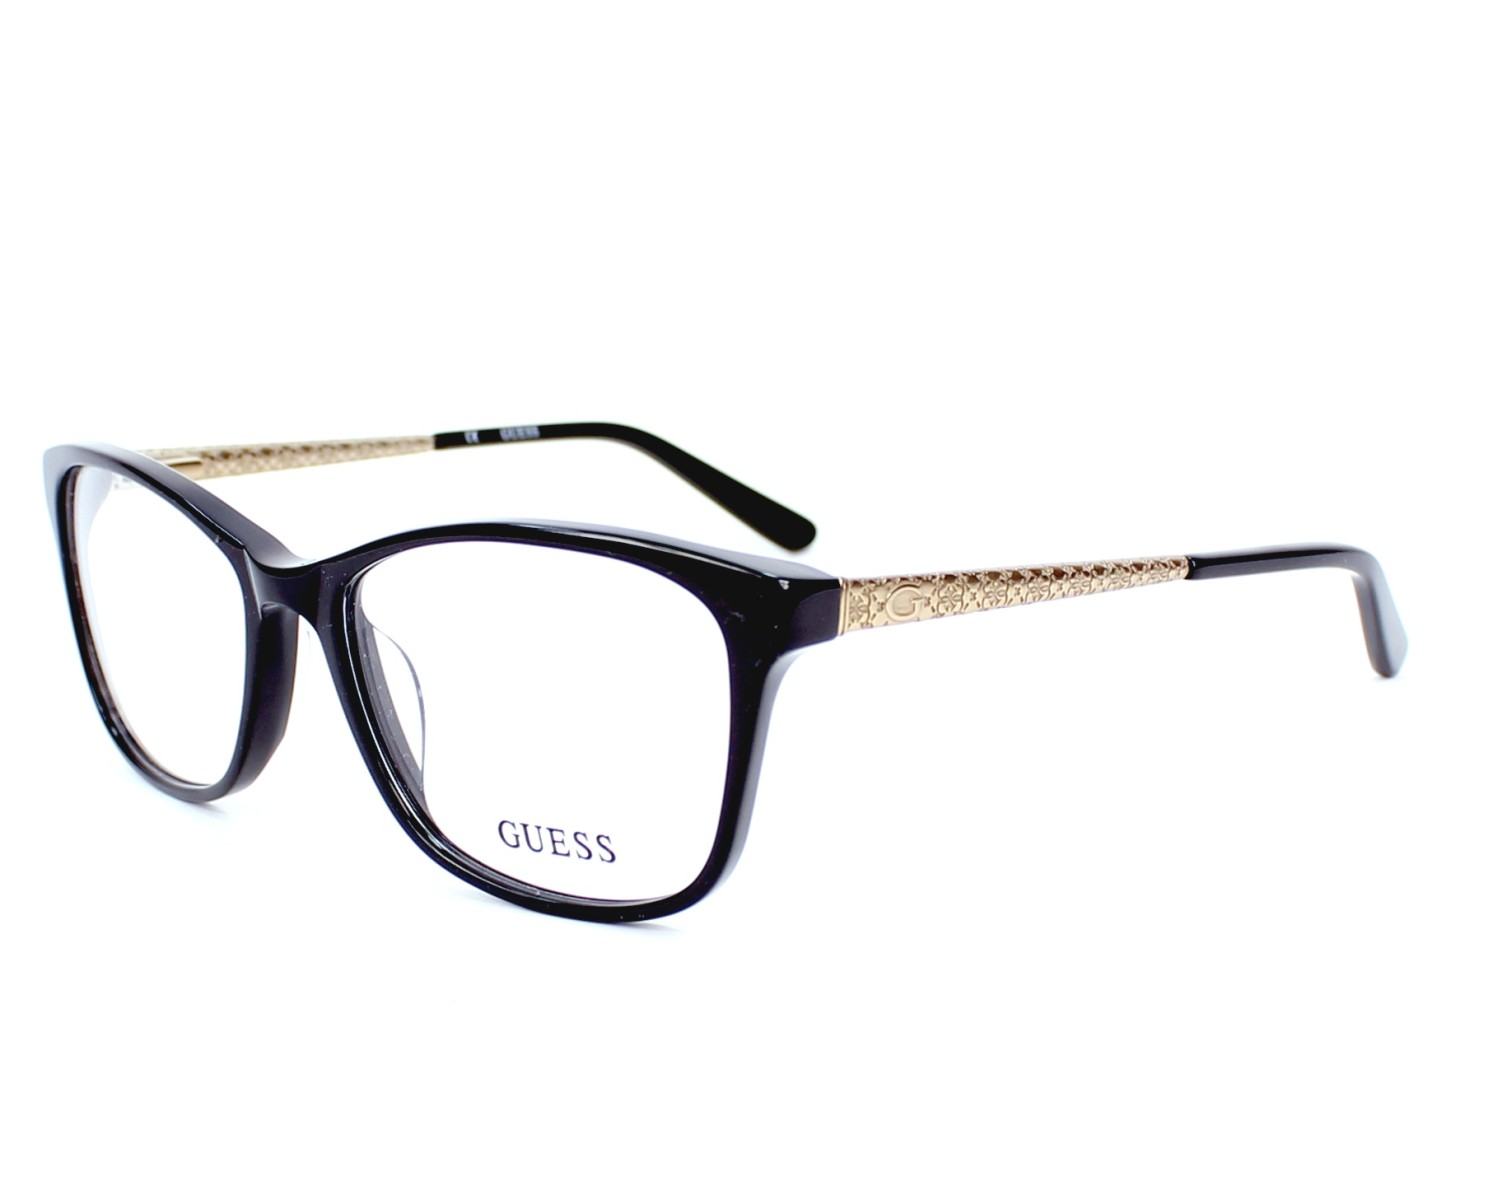 Guess Eyeglasses Black GU-2500 001 - Visionet US